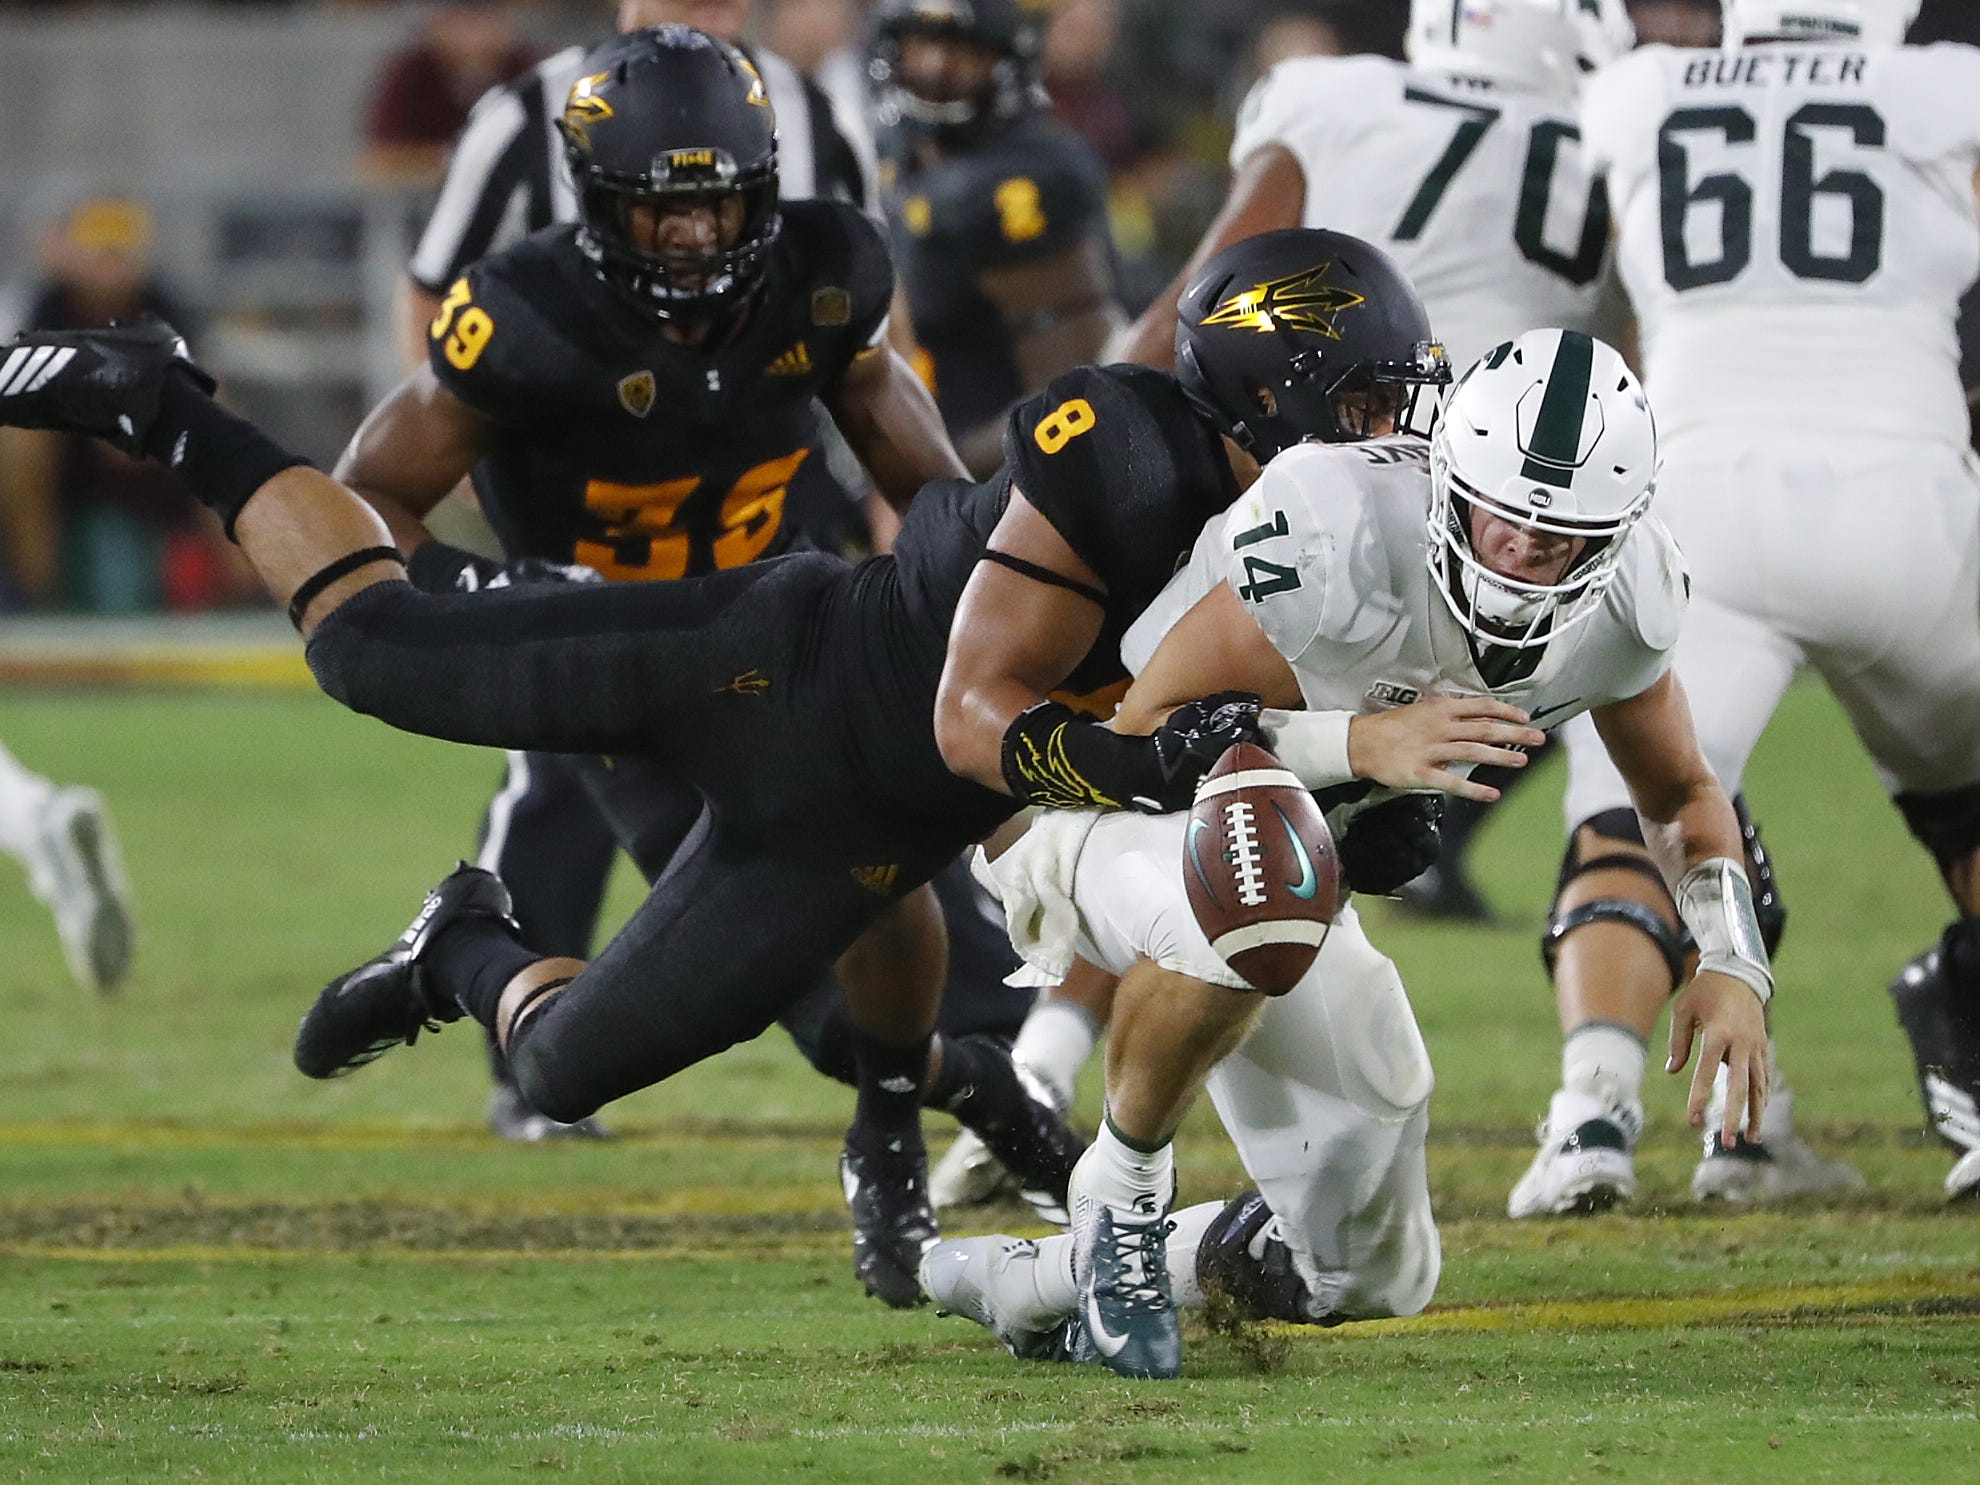 Arizona State Sun Devils linebacker Merlin Robertson (8) forces a fumble on a sack of Michigan State's quarterback Brian Lewerke (14) during the fourth quarter at Sun Devil Stadium in Tempe, Ariz. on Sept. 8, 2018.